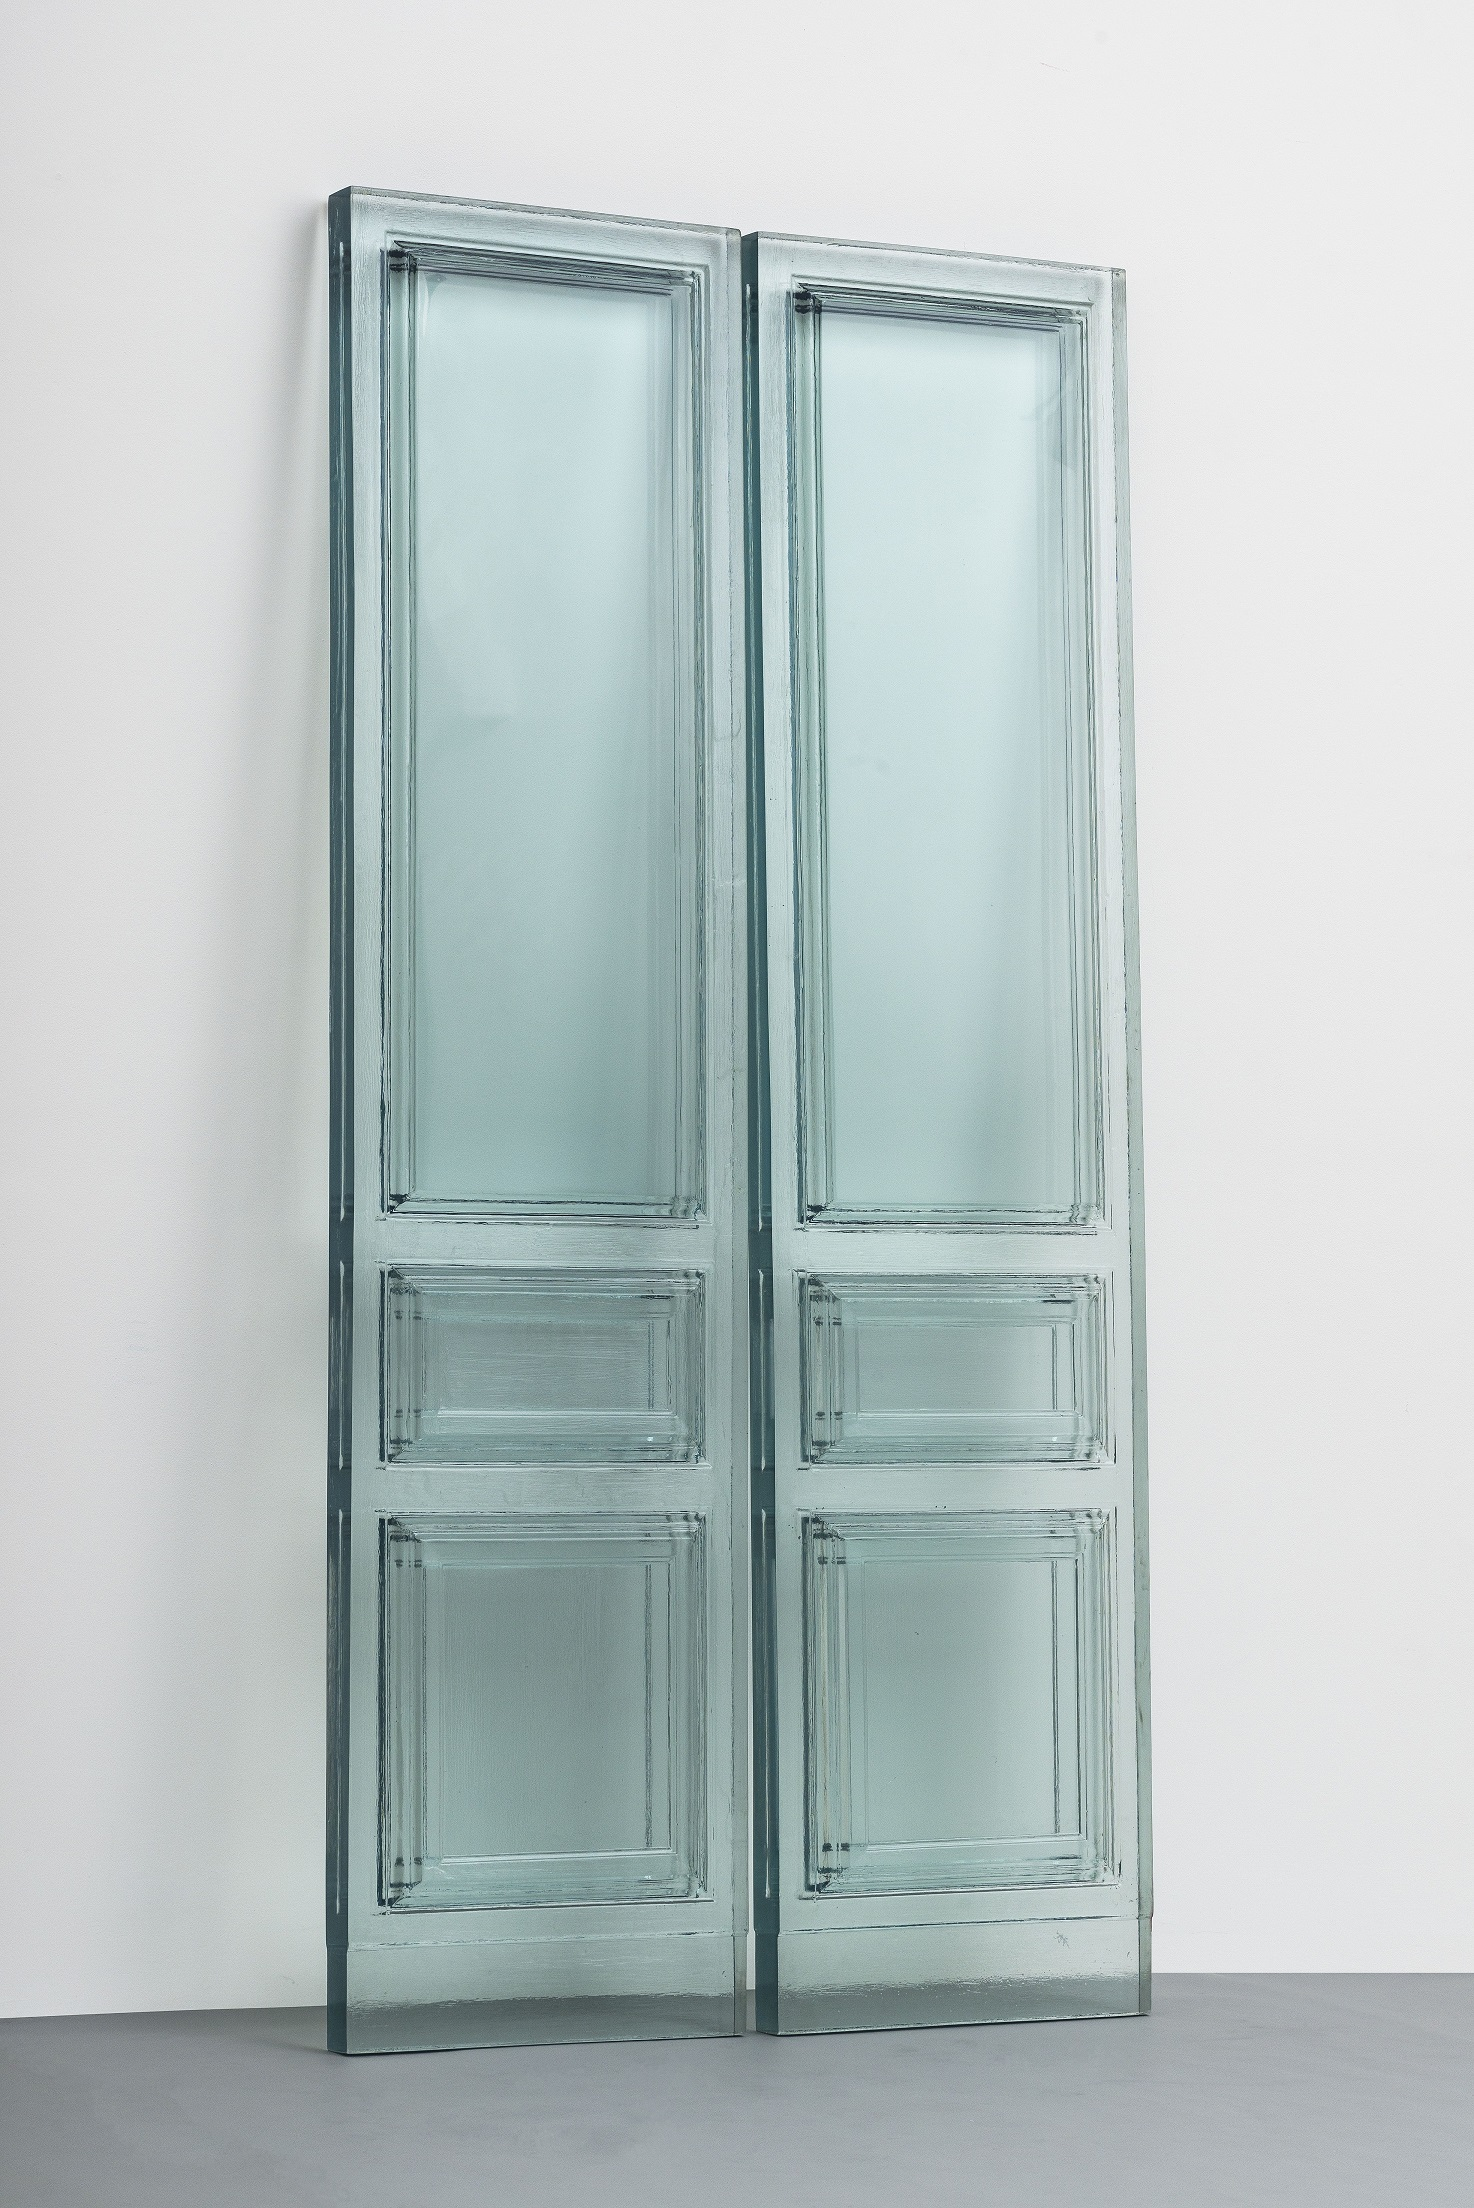 Due Porte, 2016, Rachel Whiteread